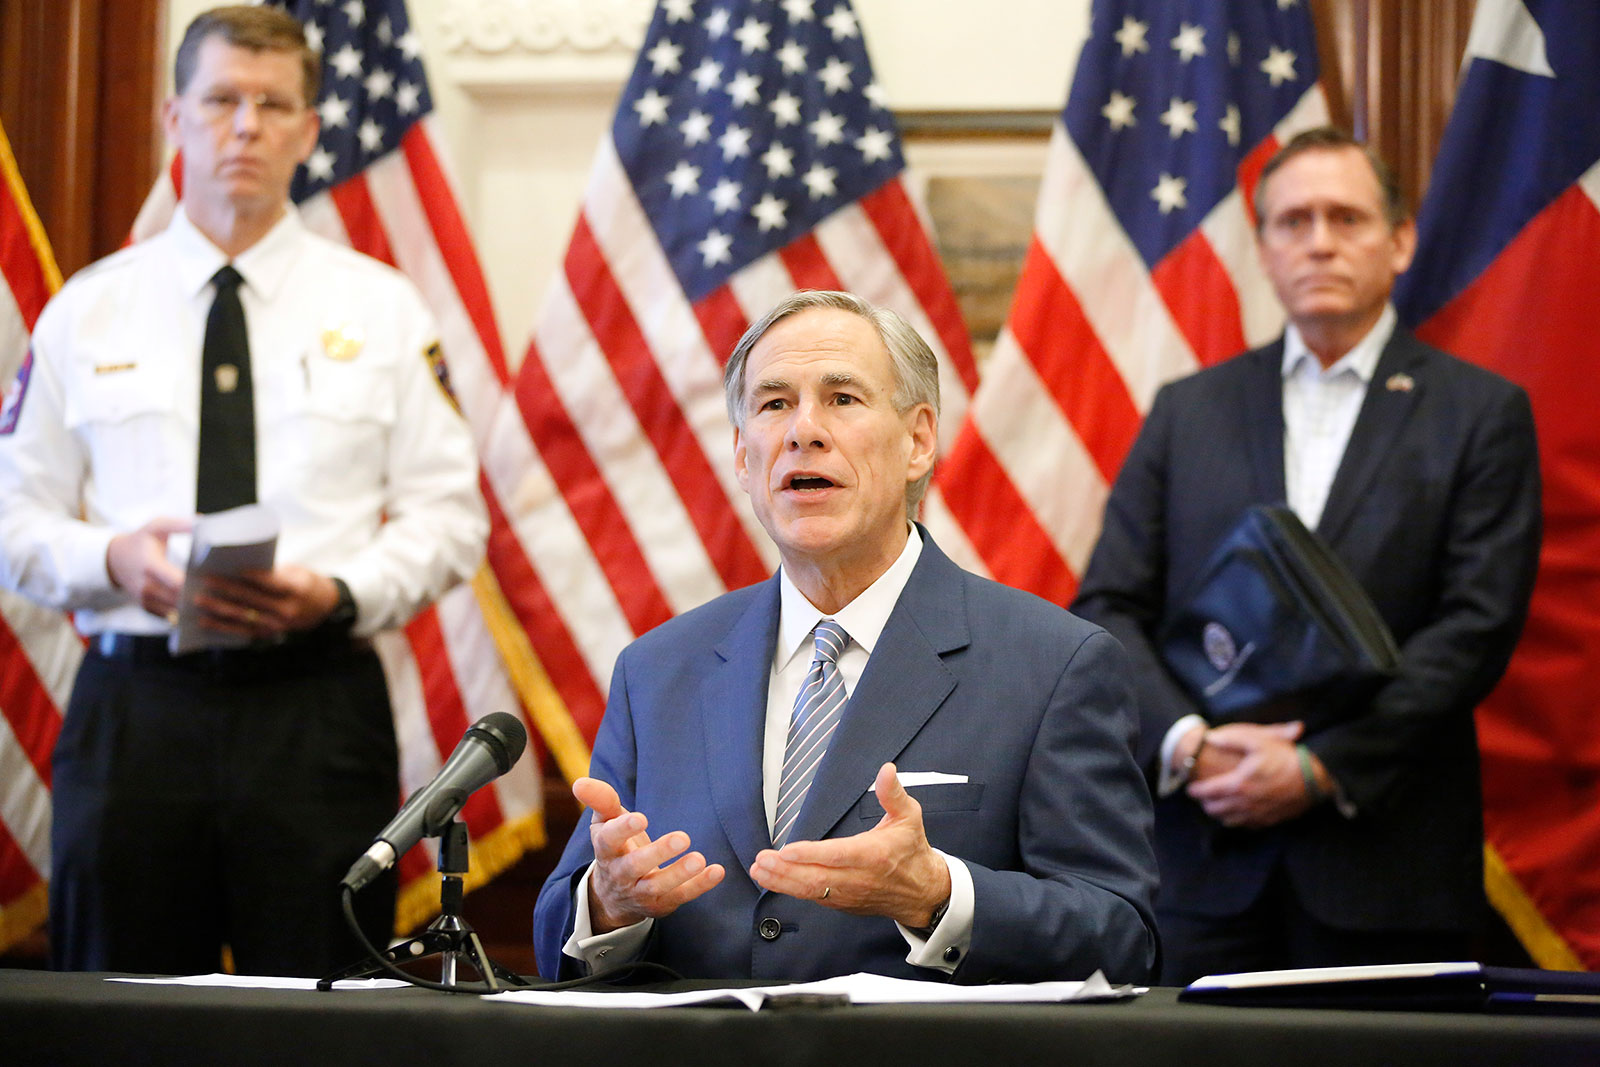 Texas Governor Greg Abbott speaks during a press briefing in Austin, Texas, on March 29.